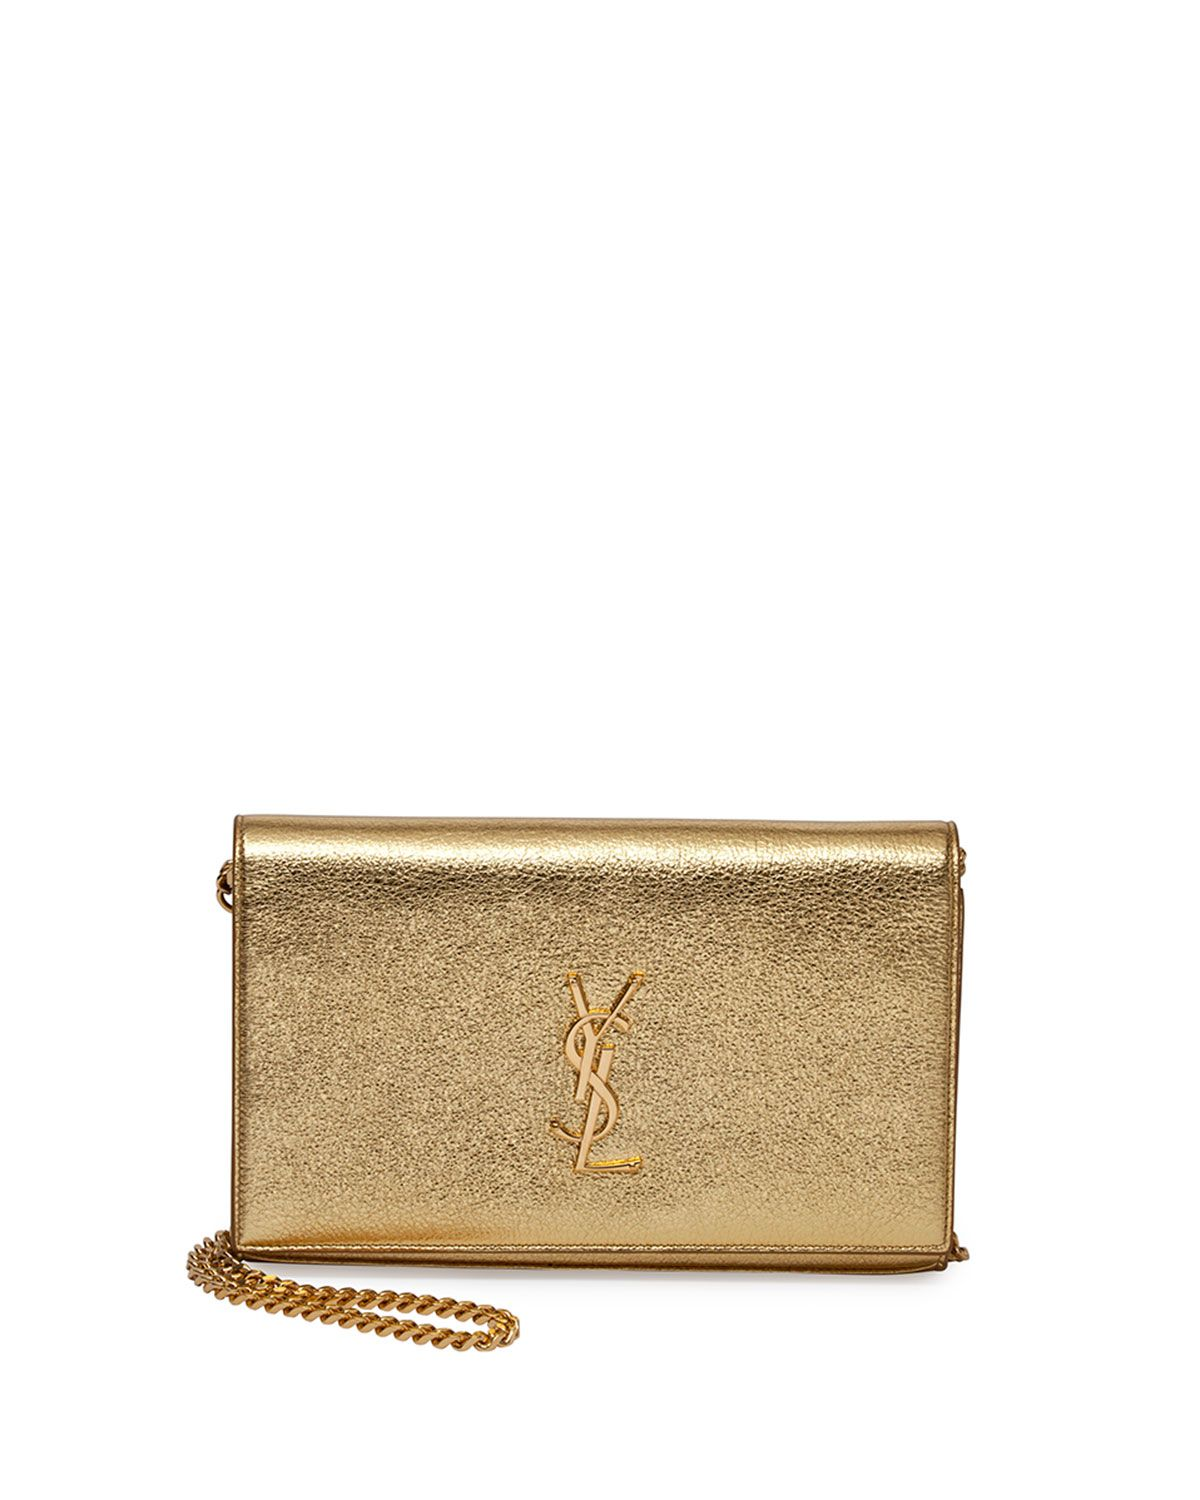 4c48948602e3 Yves Saint Laurent Monogram Metallic Chain Wallet